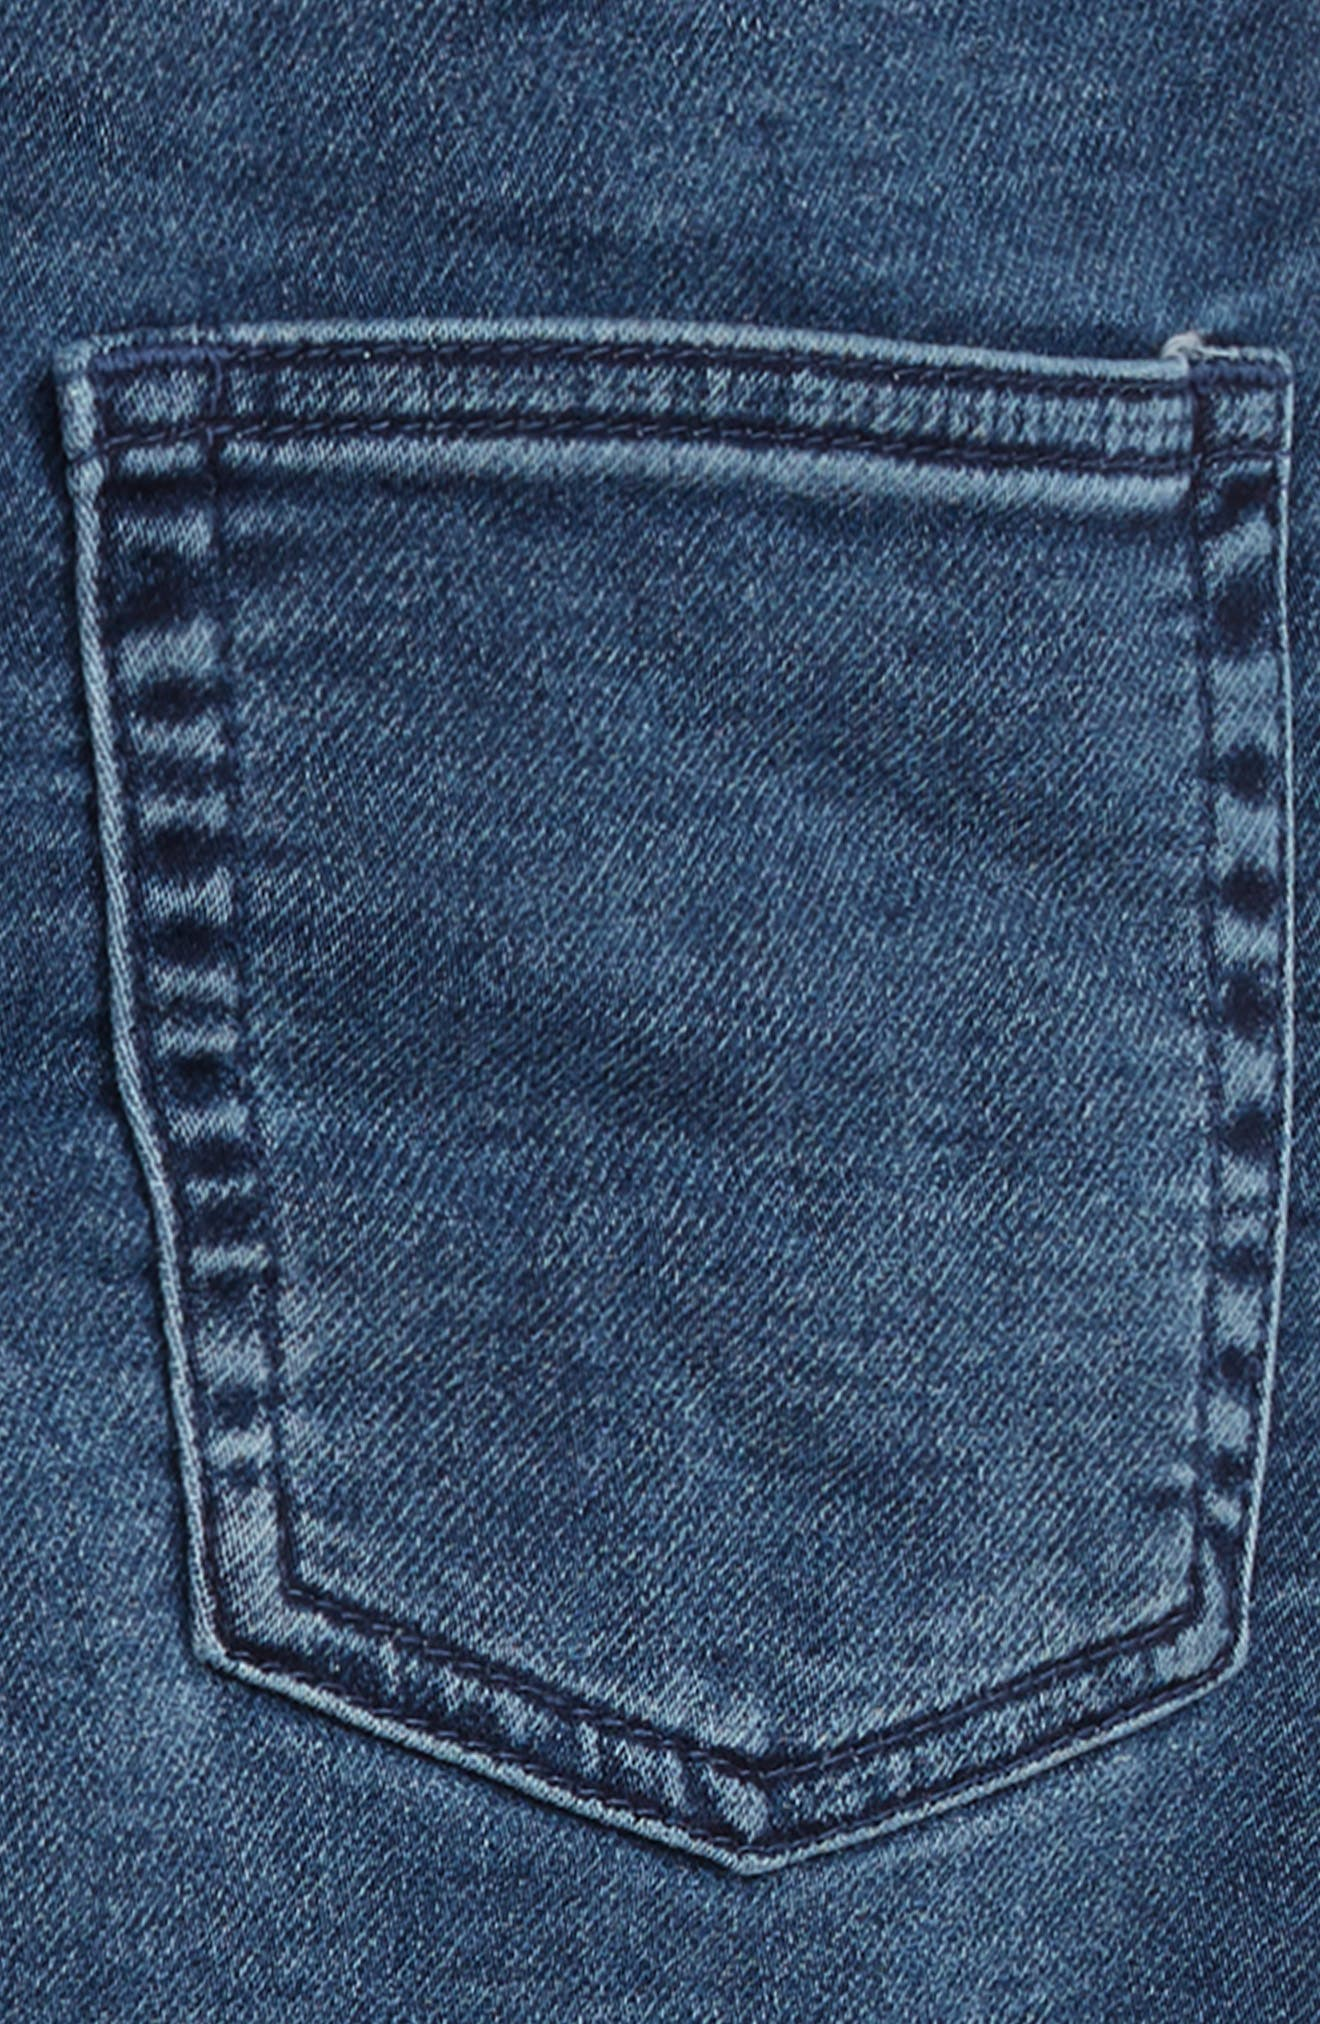 Runaround Pull-On Jeans,                             Alternate thumbnail 3, color,                             400